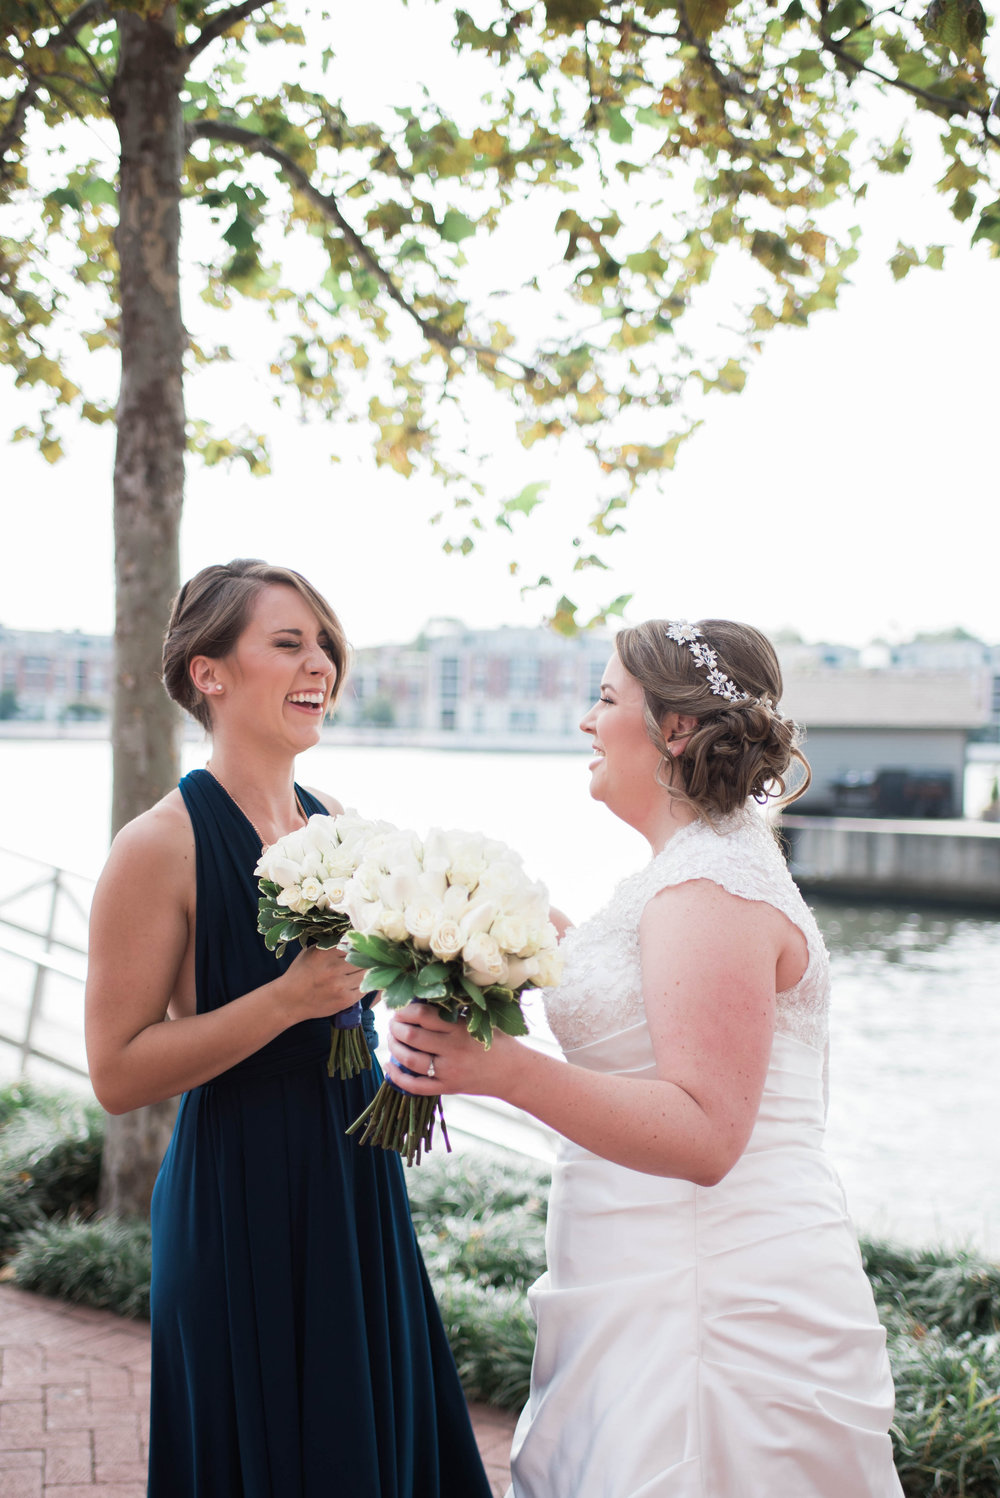 Bride and Bridesmaid | Maryland, Washington DC, Pennsylvania, Virginia Wedding Photographer | Anne Casey Photography